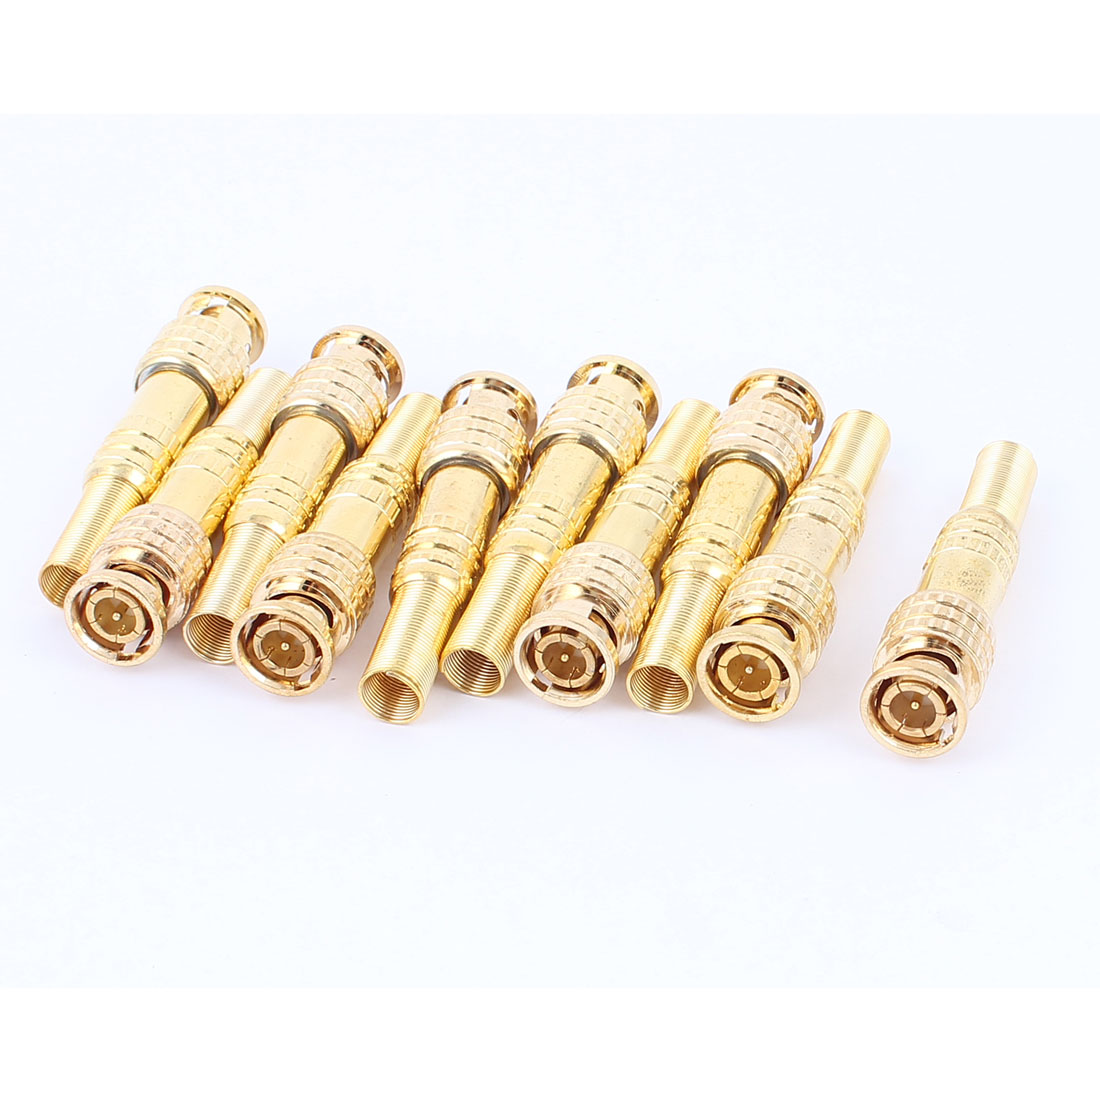 10 Pcs Twist Spring Gold-plated BNC Male Adapter Connector for CCTV Camera